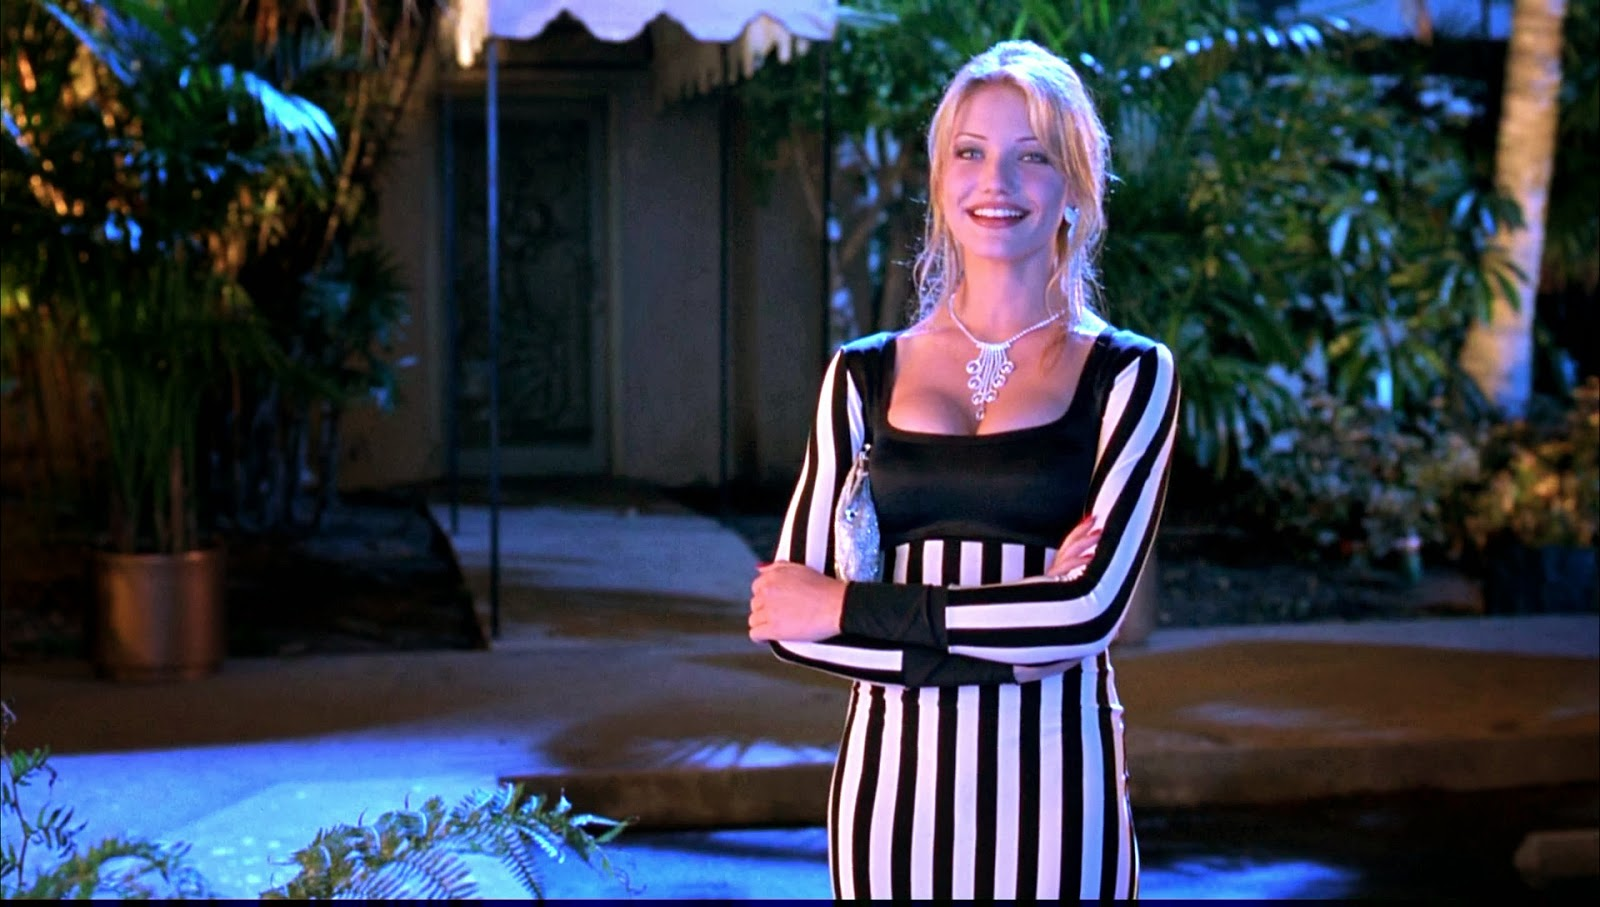 When Fashion Met Film: That Dress: Cameron Diaz in The Mask